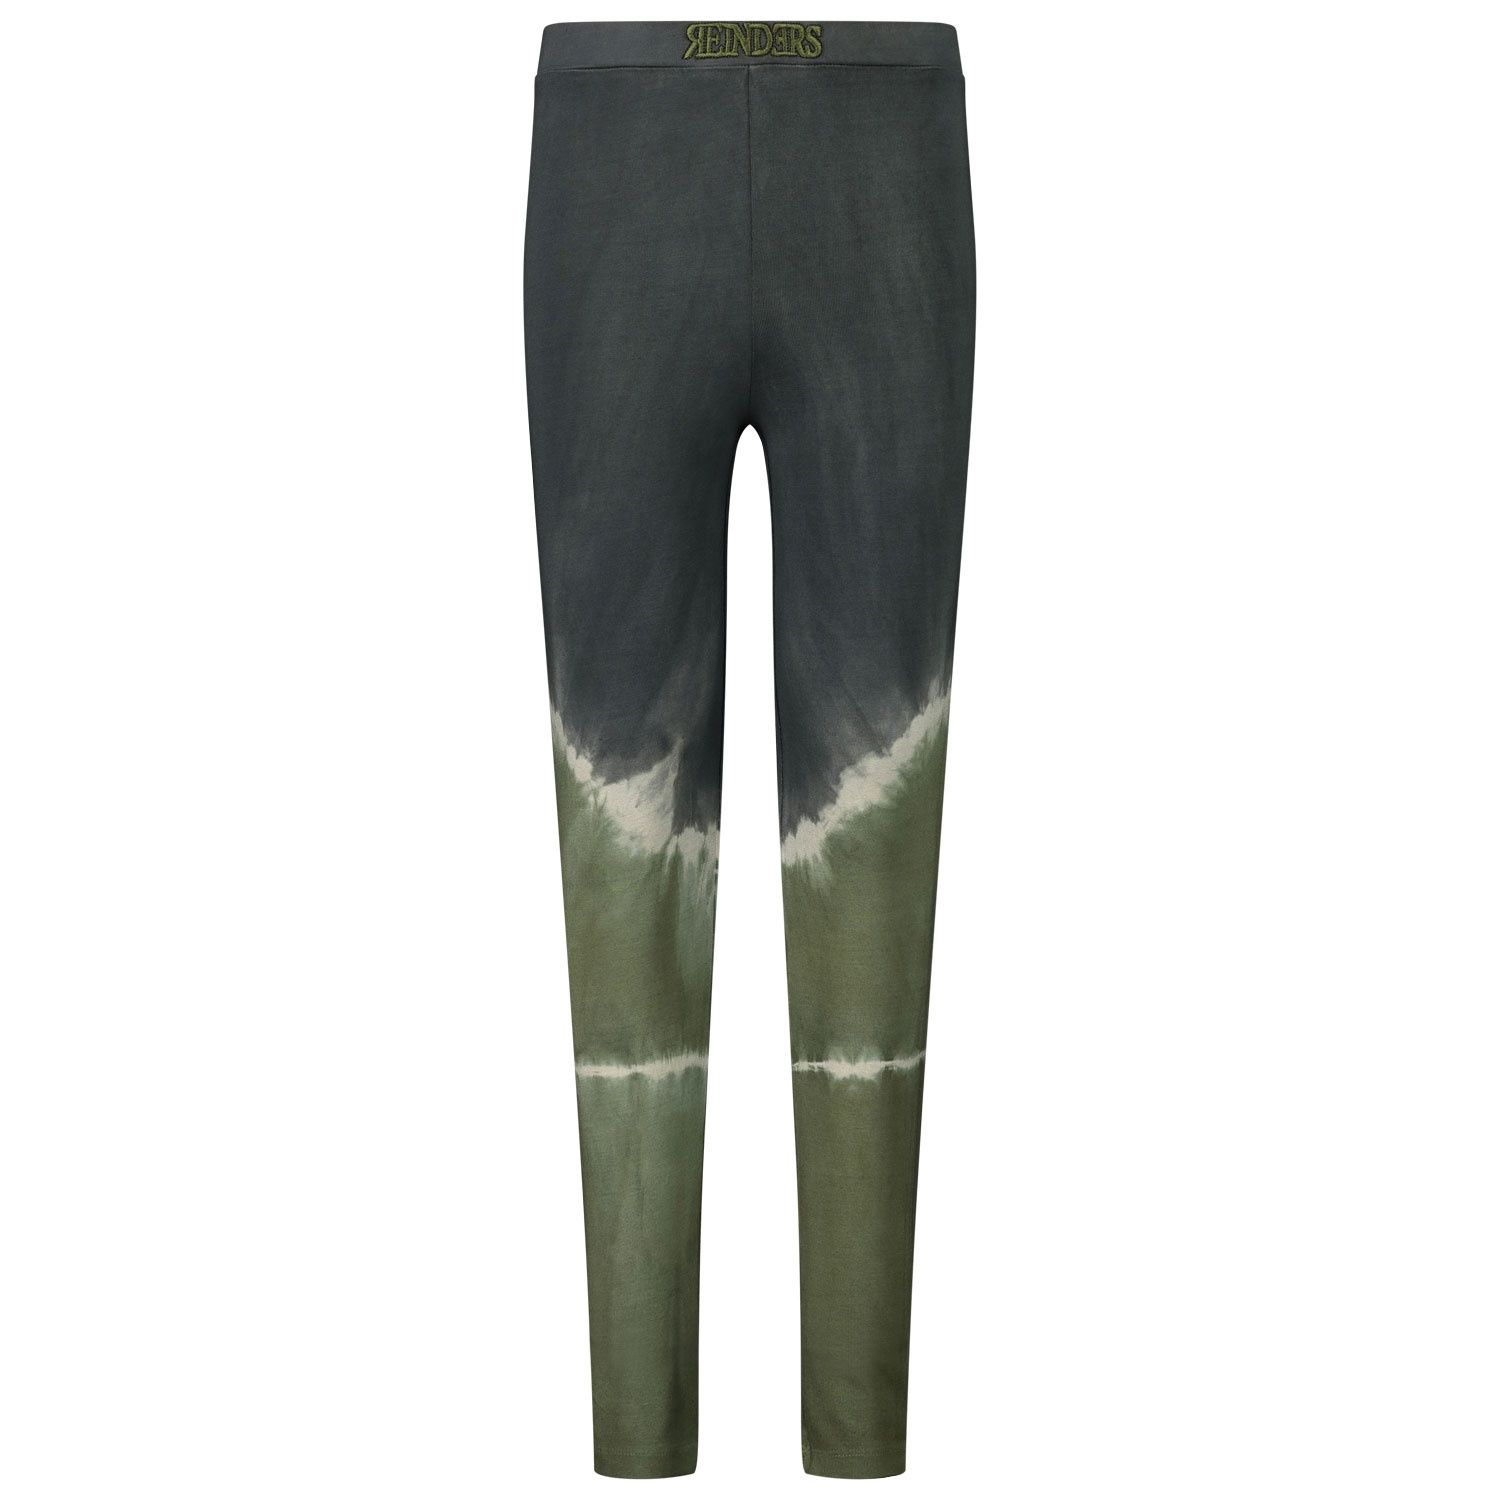 Picture of Reinders G1200T kids tights army